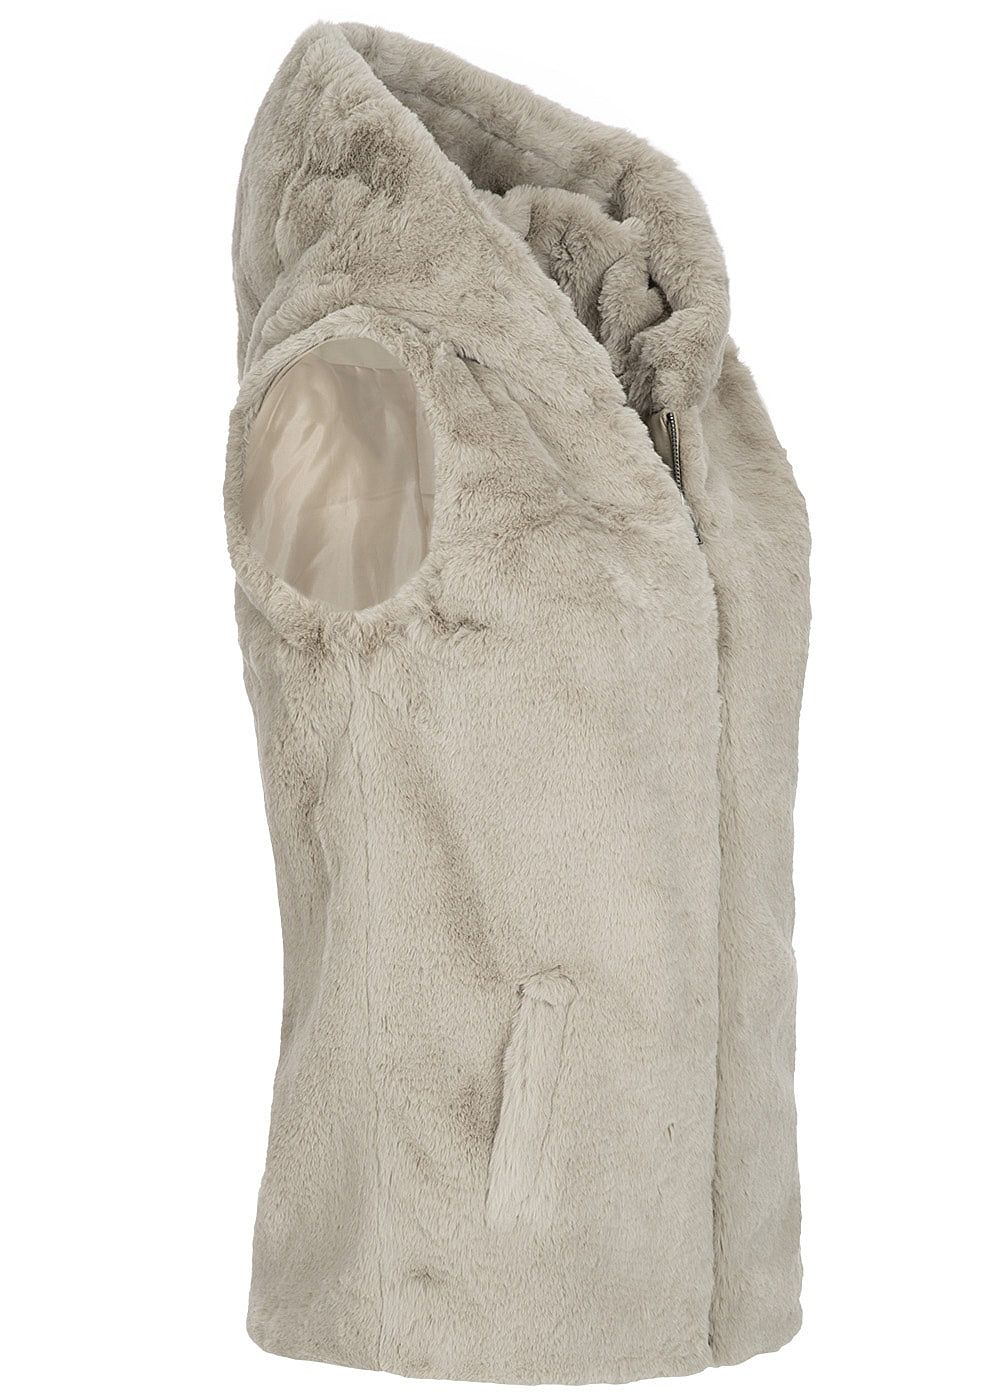 reputable site 025ad 3a3e5 ONLY Damen Weste Kapuze Teddyfell pure cashmere beige